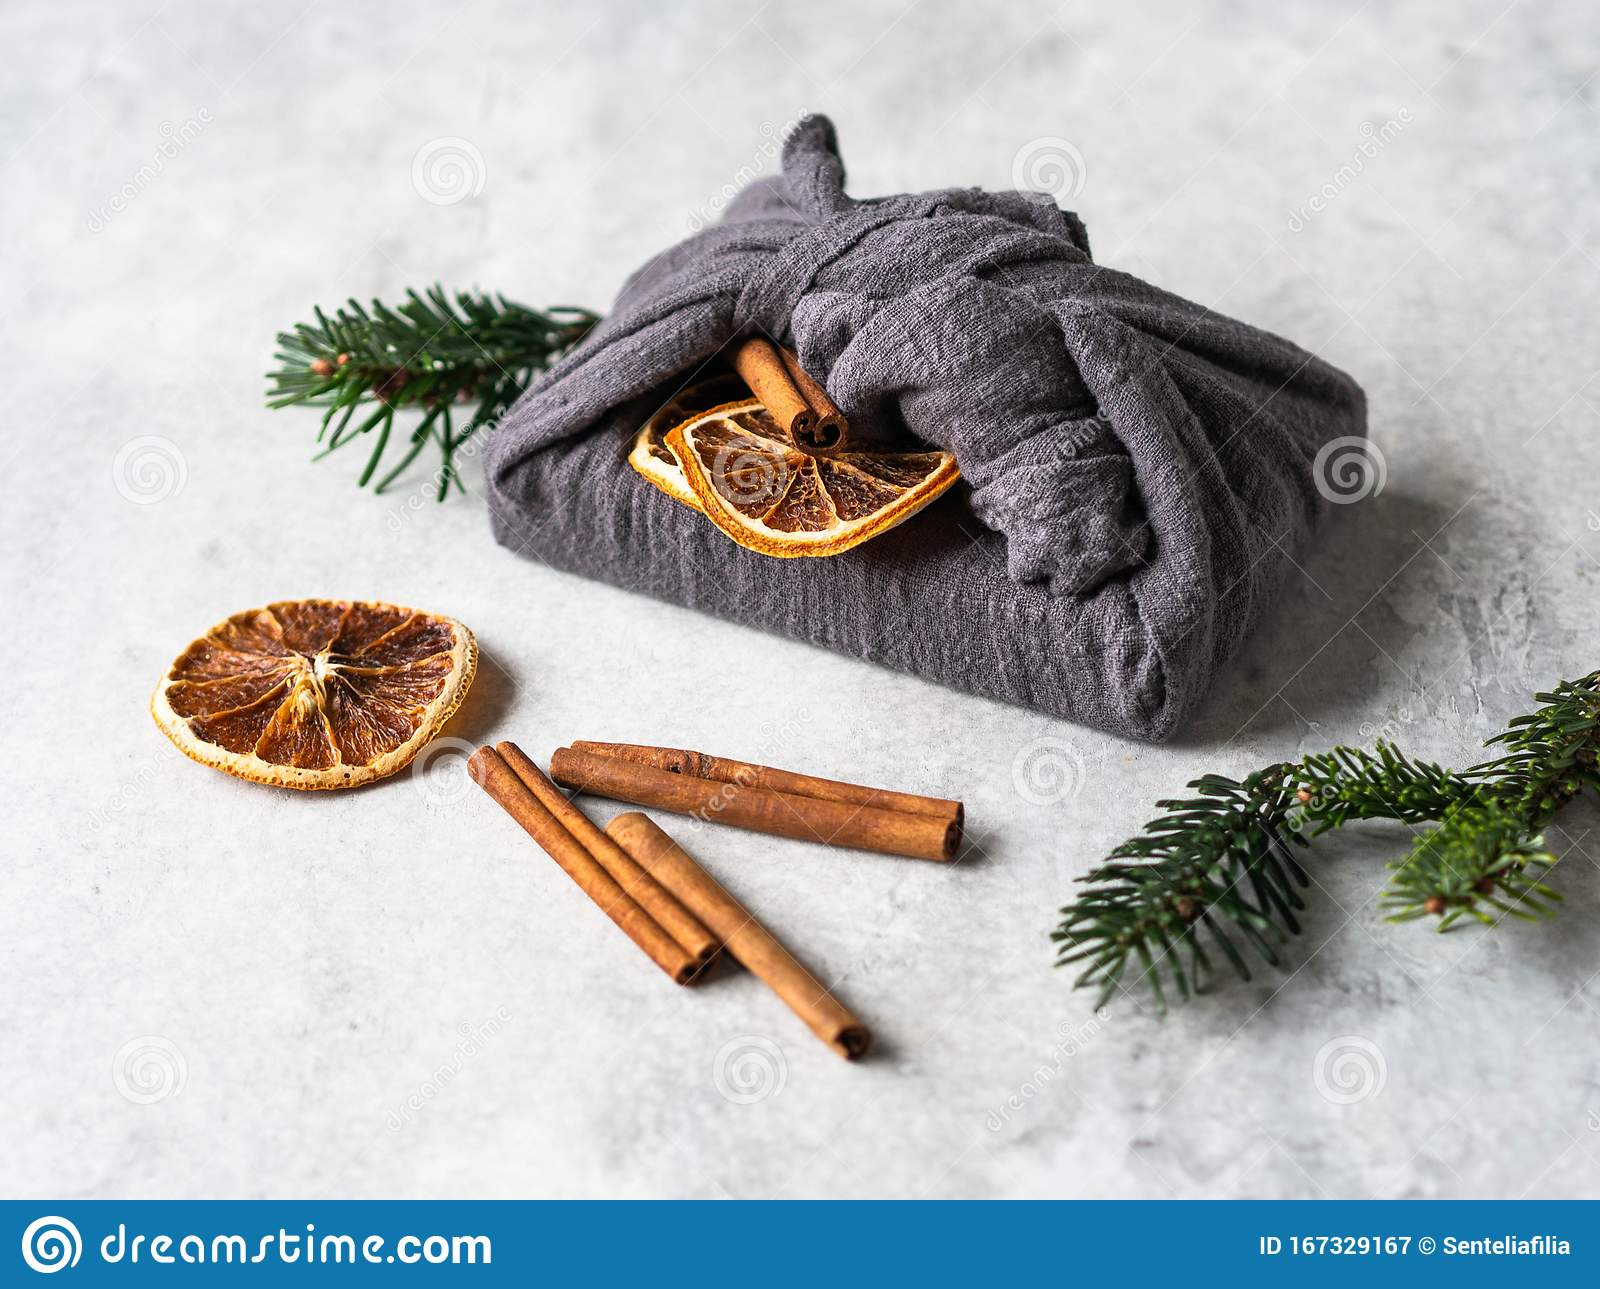 Eco Friendly Fabric Reusable Gift Packaging With Fir Brunch Cinnamon Stick And Dry Orange Slice Christmas Reusable Sustainable Stock Image Image Of Environment Present 167329167